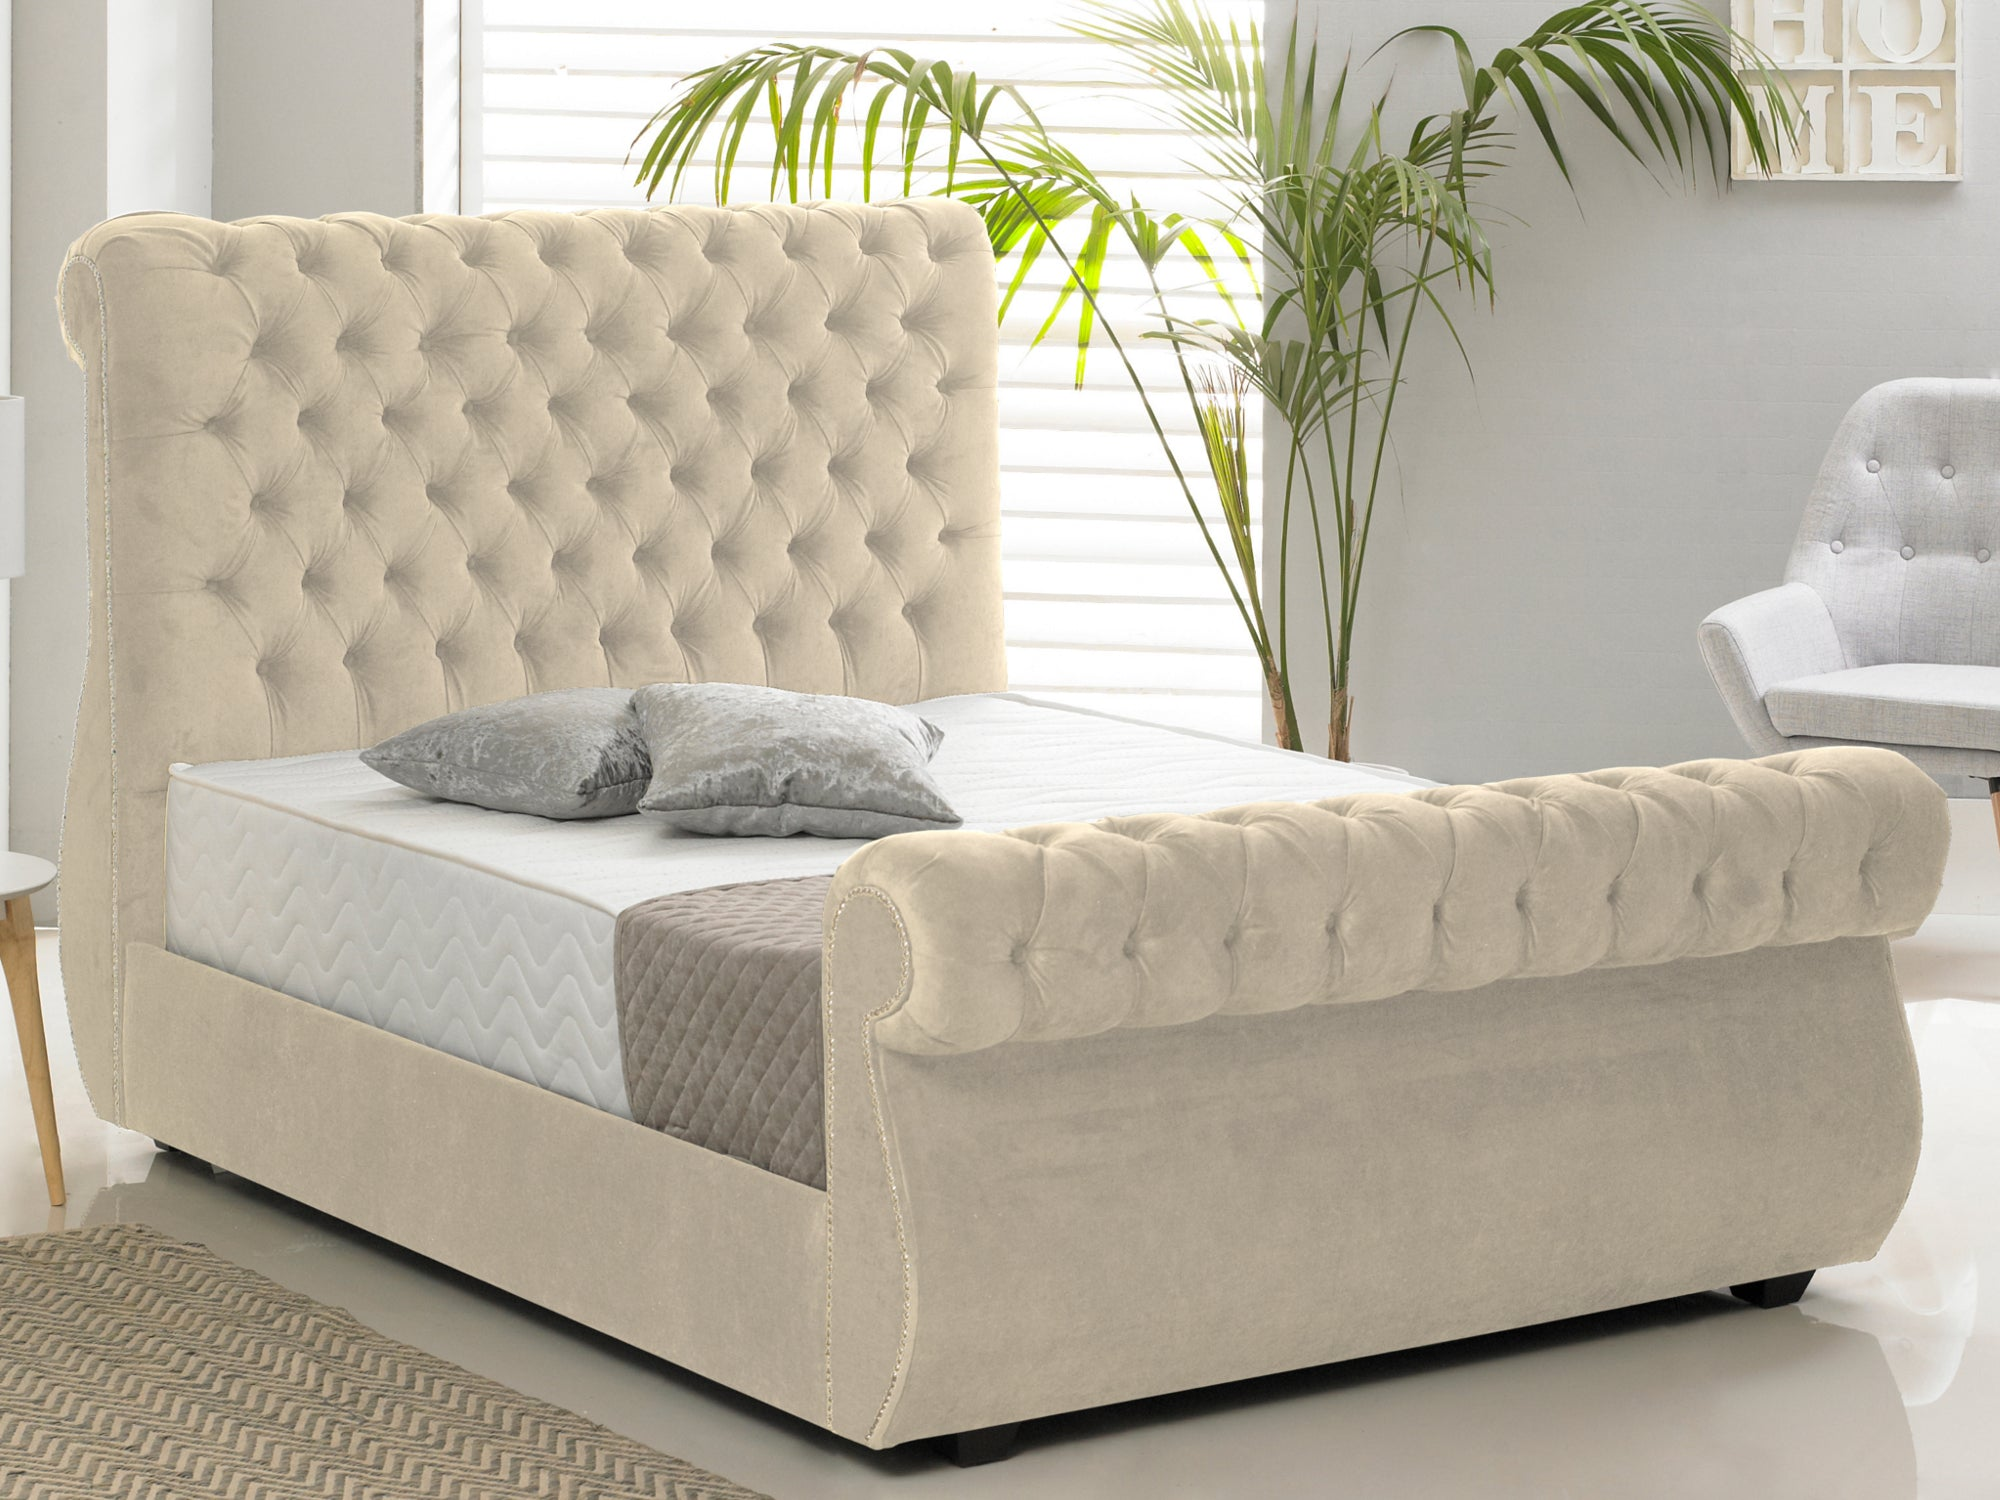 Chiswick Luxury Bed Frame in Hercules Cream – The Cosy Bedding Company